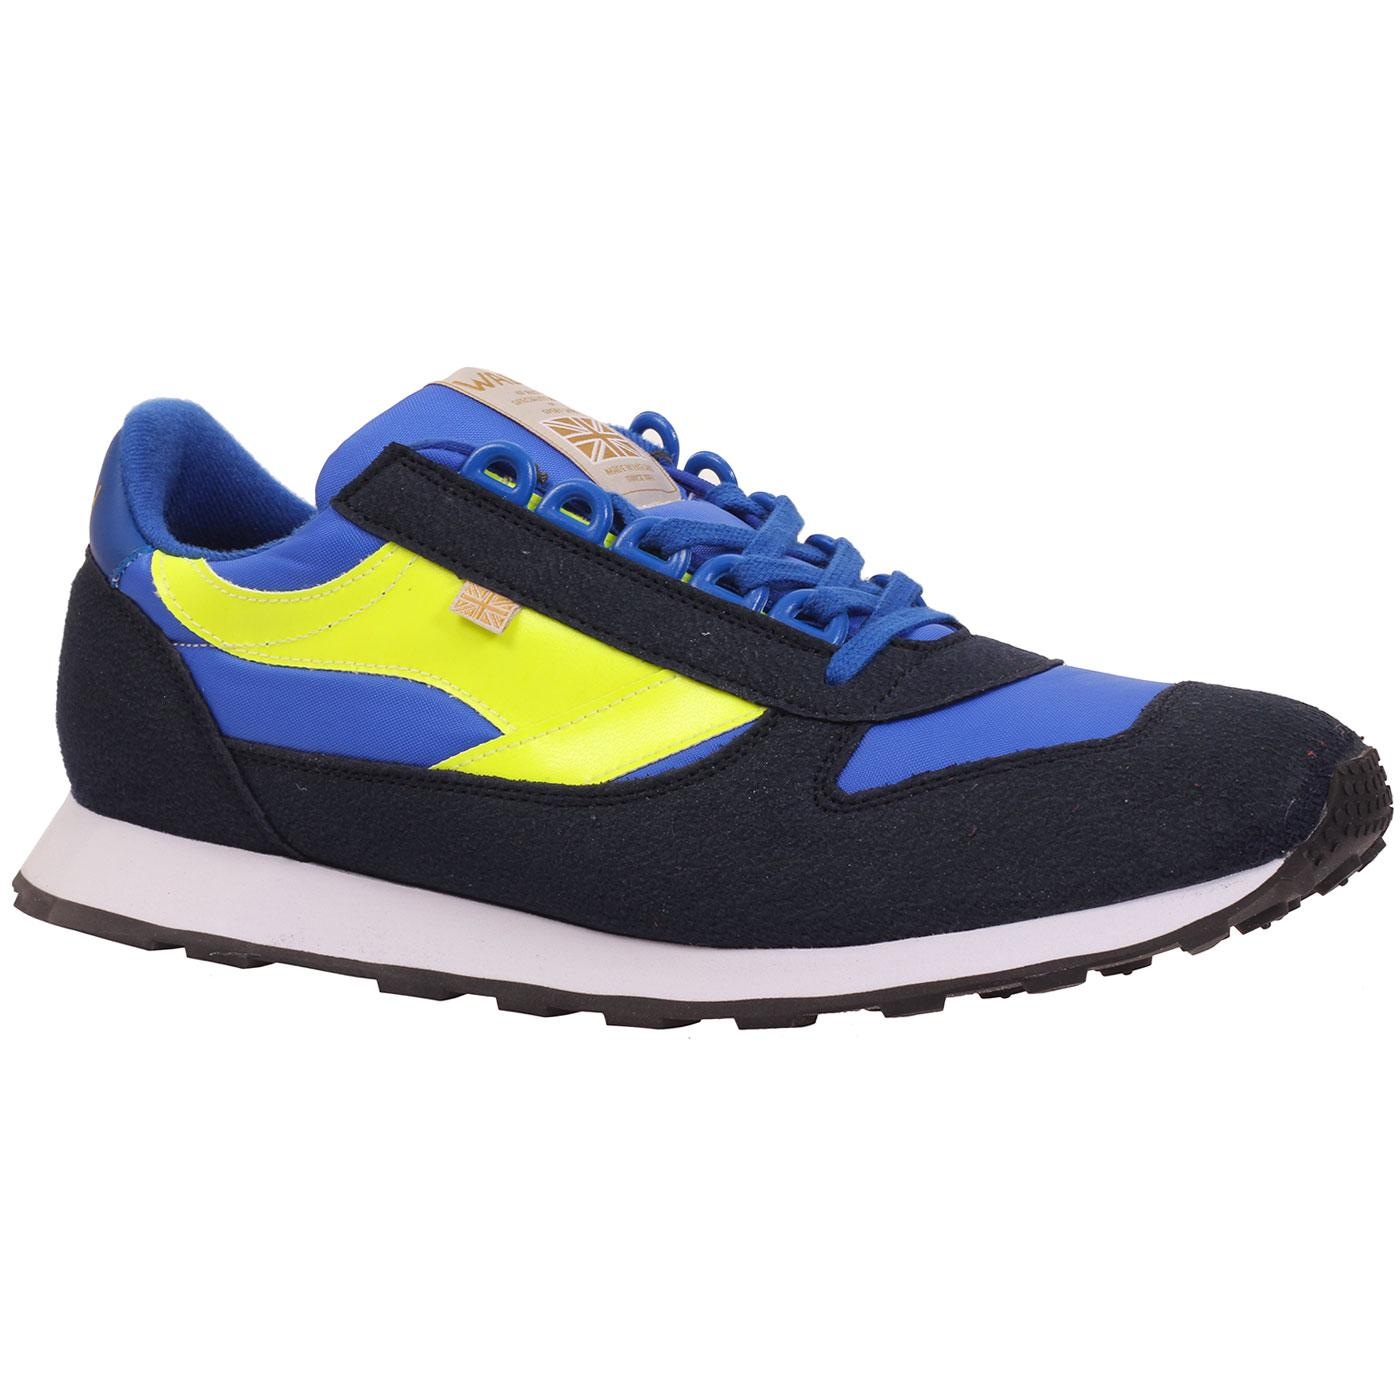 WALSH European Retro Made in England Trainers NBF